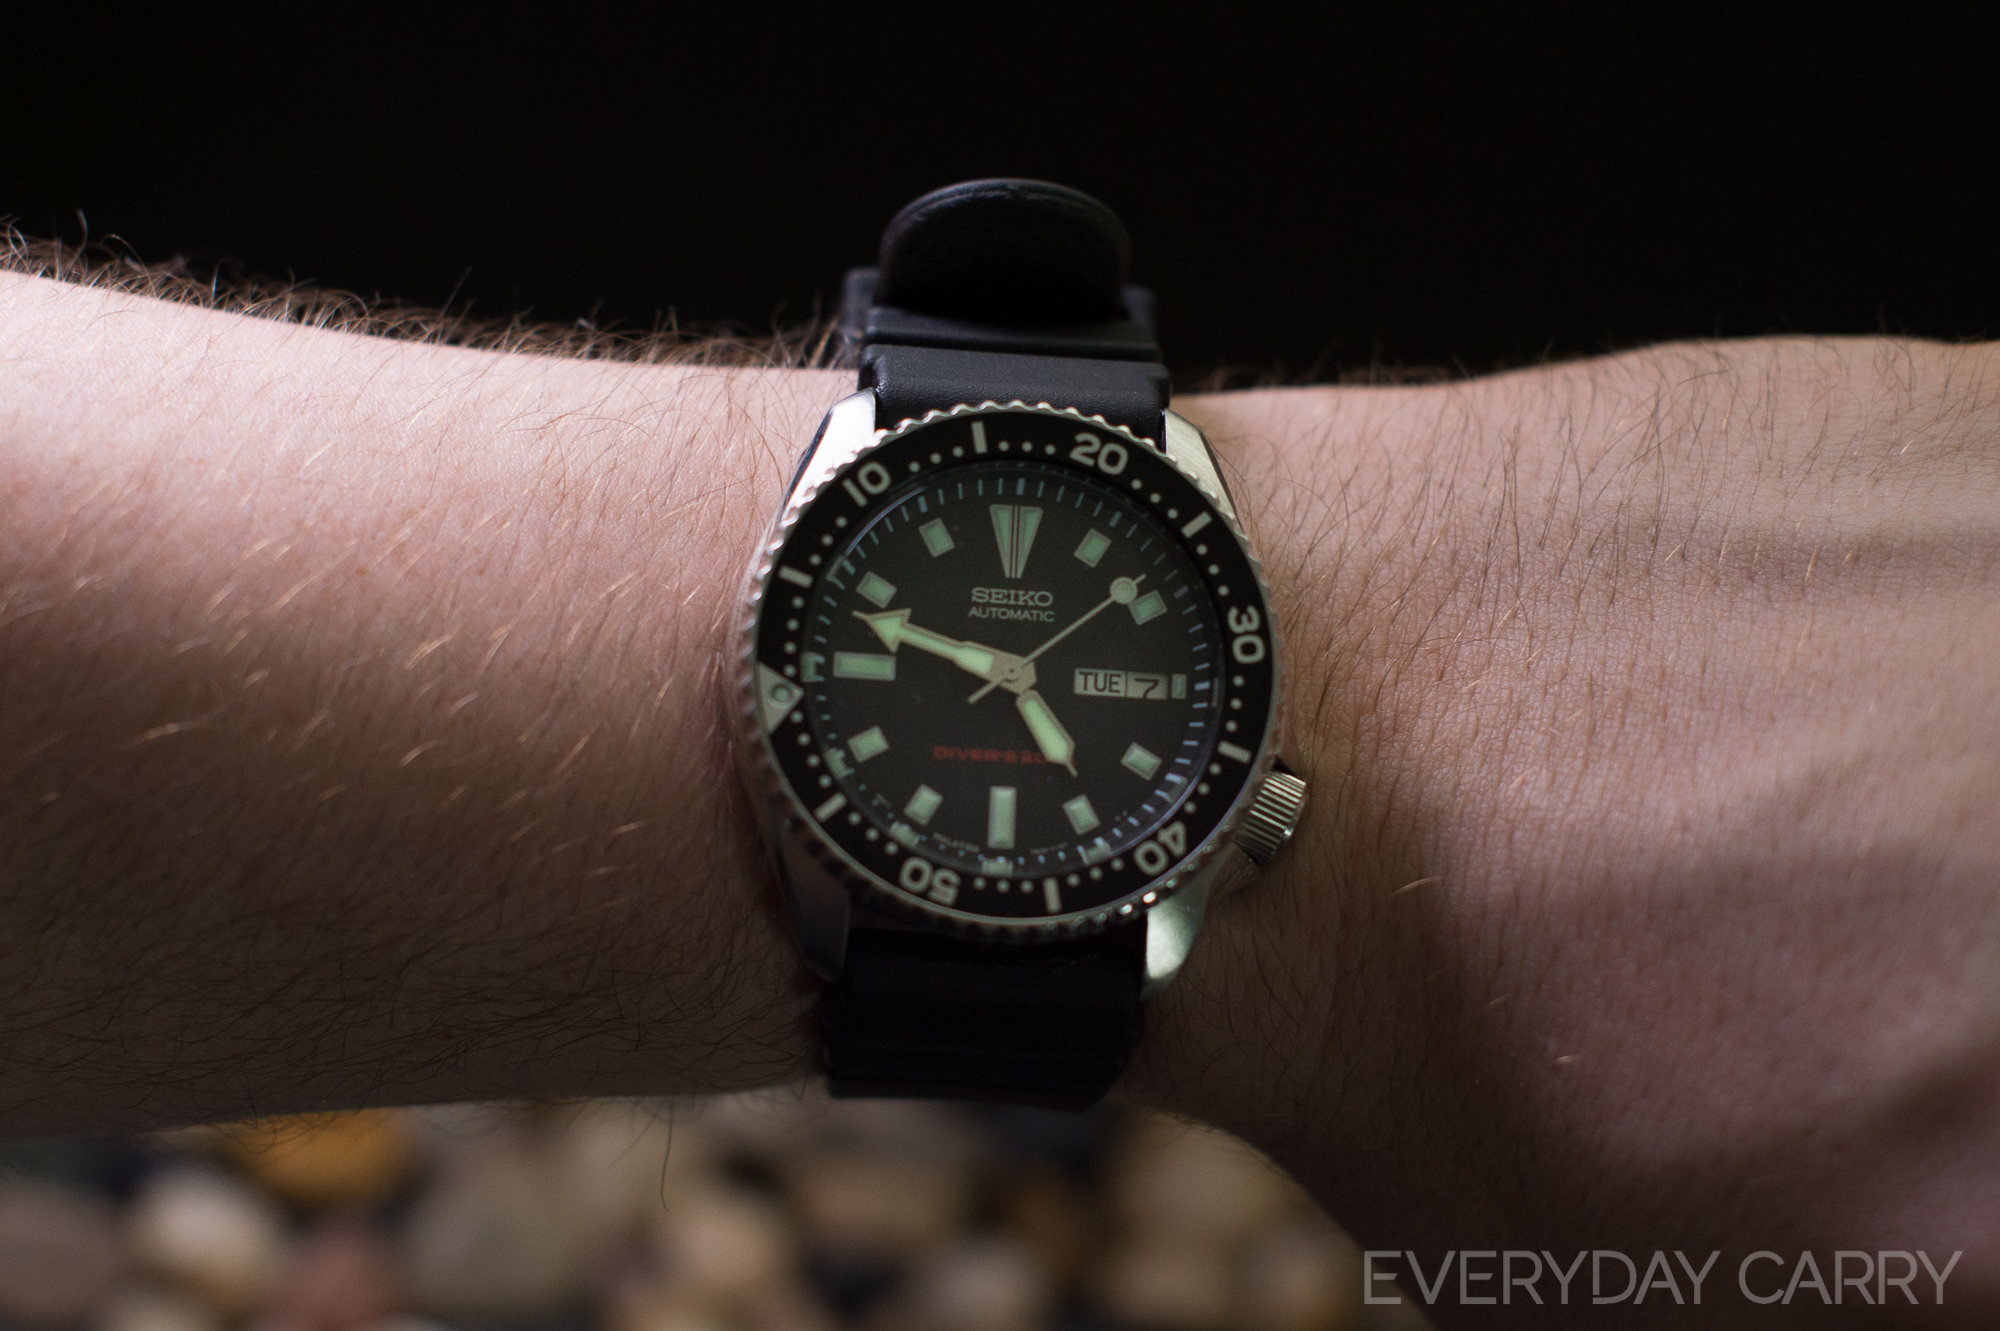 worn watches for wound tough outside summer beaters under seiko